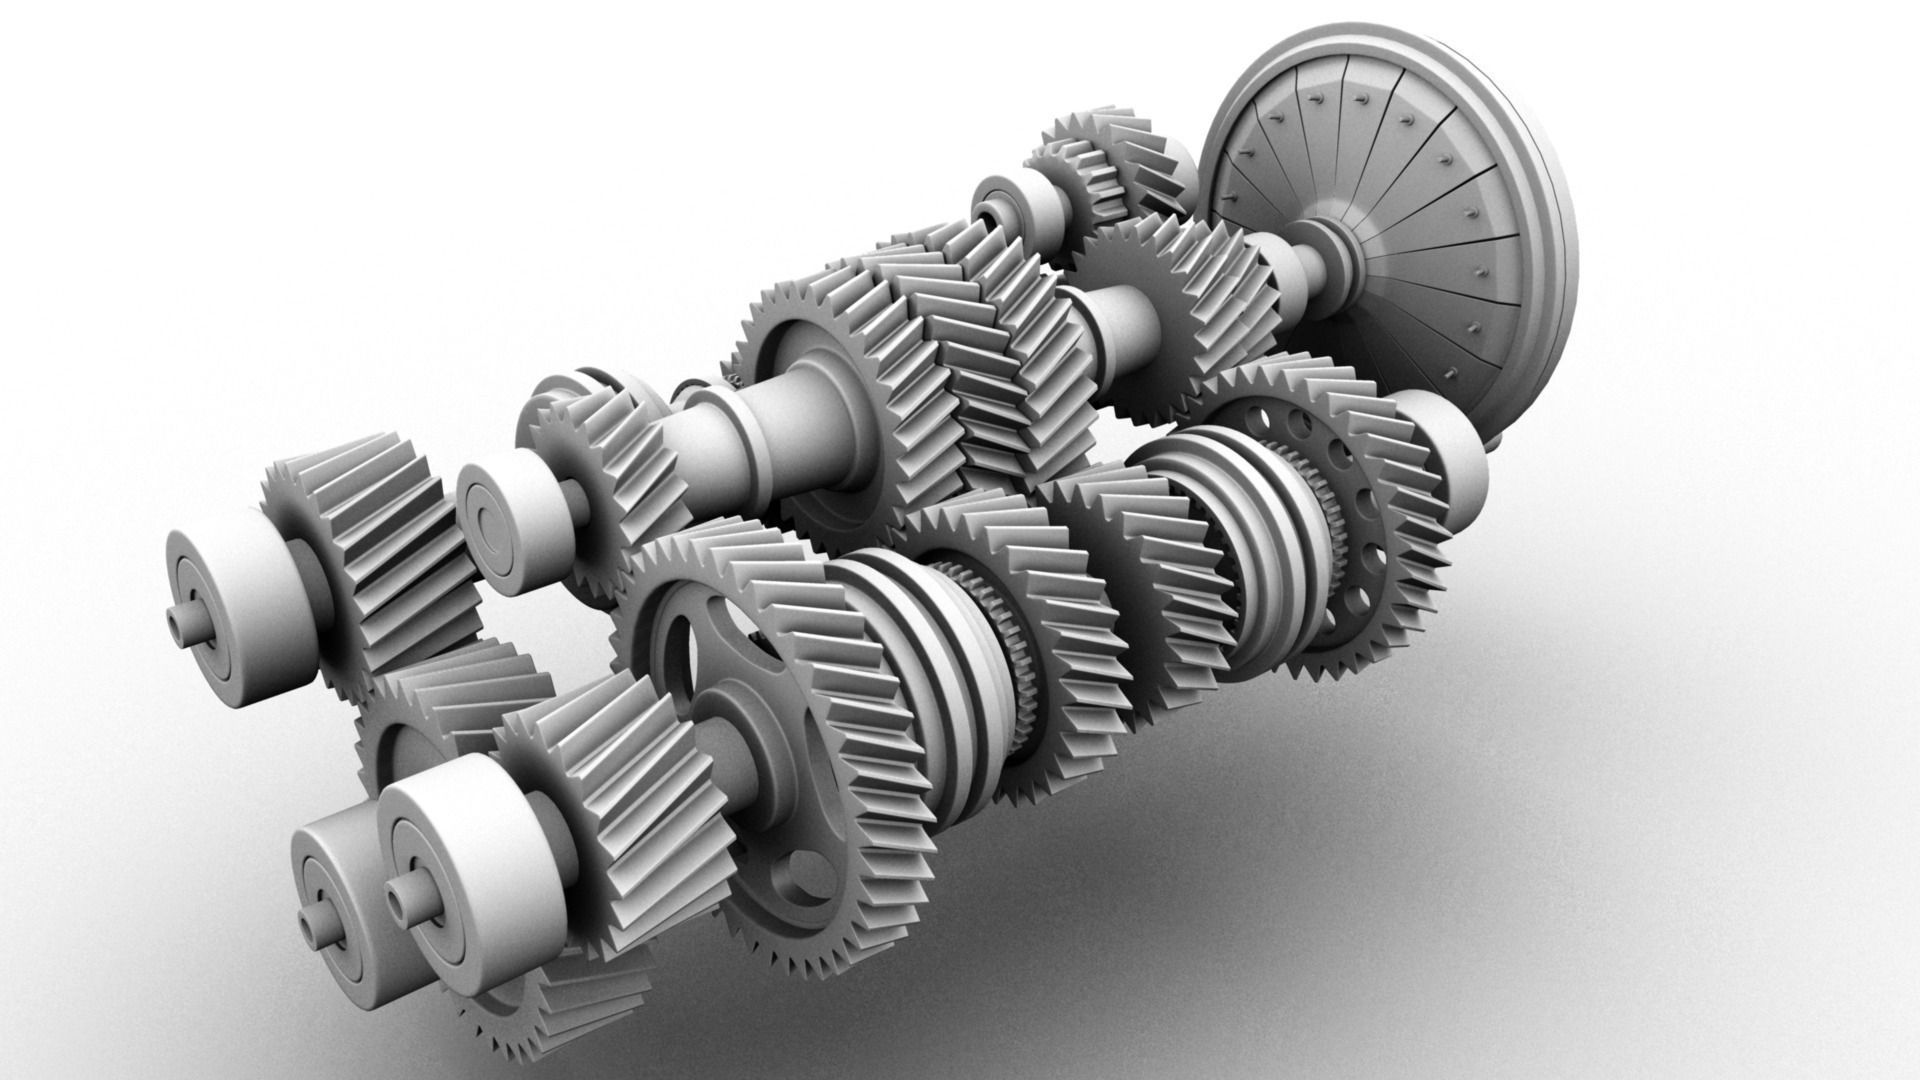 6_speed_reverse_gear_box_with_accurate_ratios_3d_model_ma_mb_27639eb6-b39f-4608-855d-32054a8c5abc